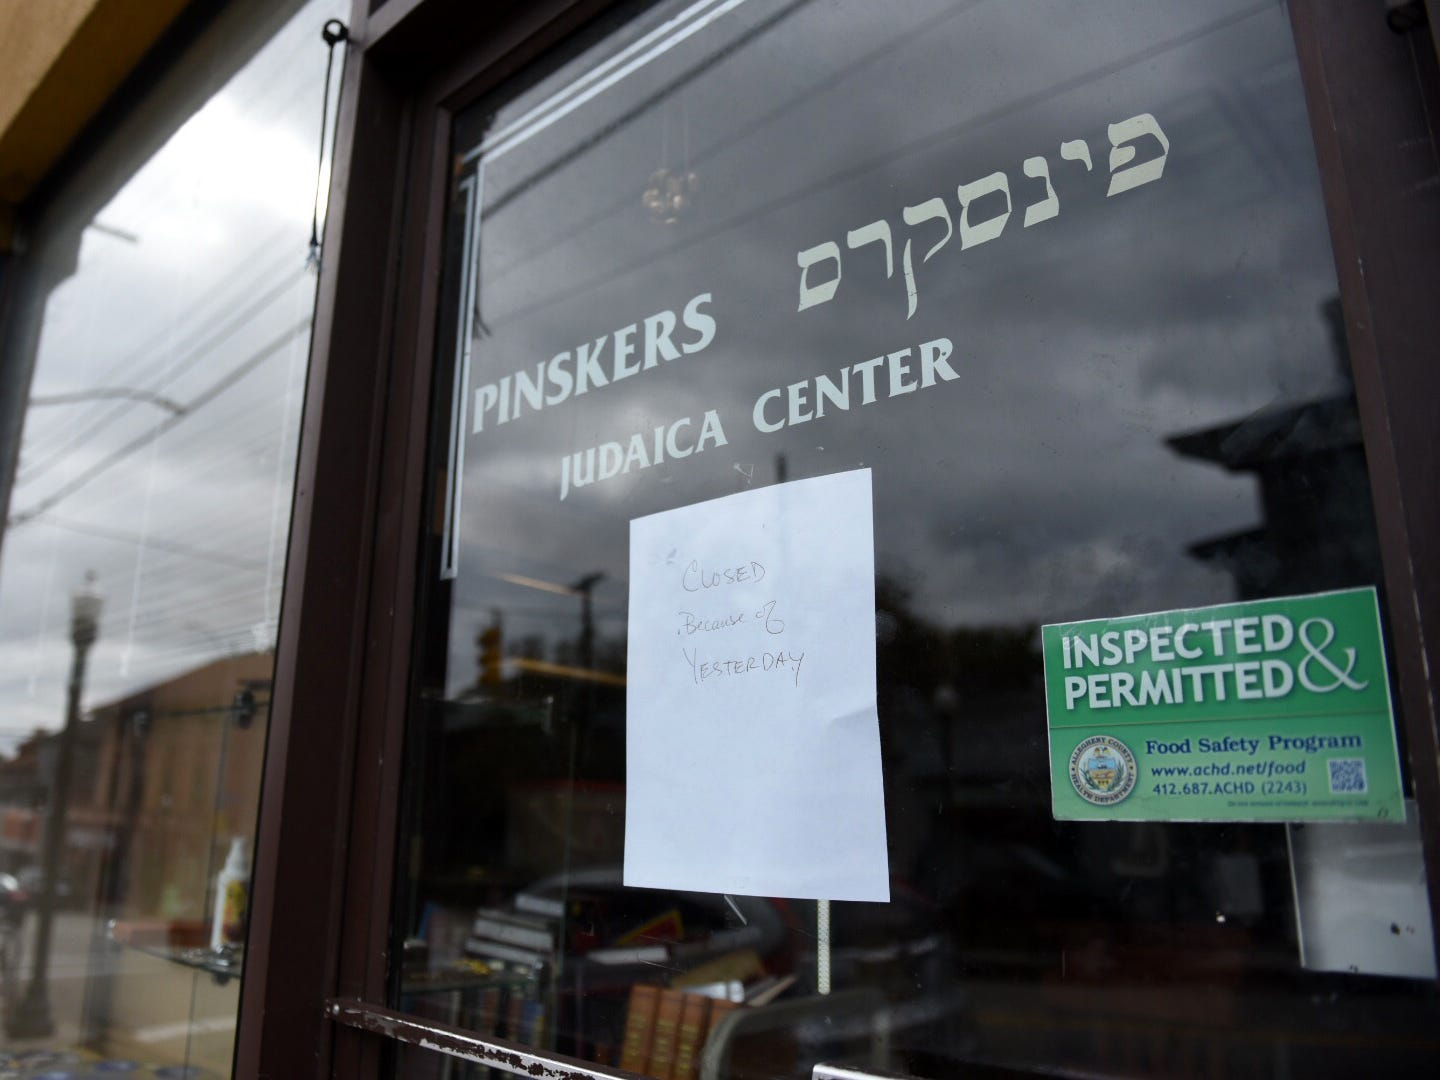 """Closed because of yesterday"" sign posted in the window on Pinskers Judaica Center on Murray Ave. in the Squirrel Hill neighborhood of Pittsburgh, Sunday, Oct. 28, 2018."